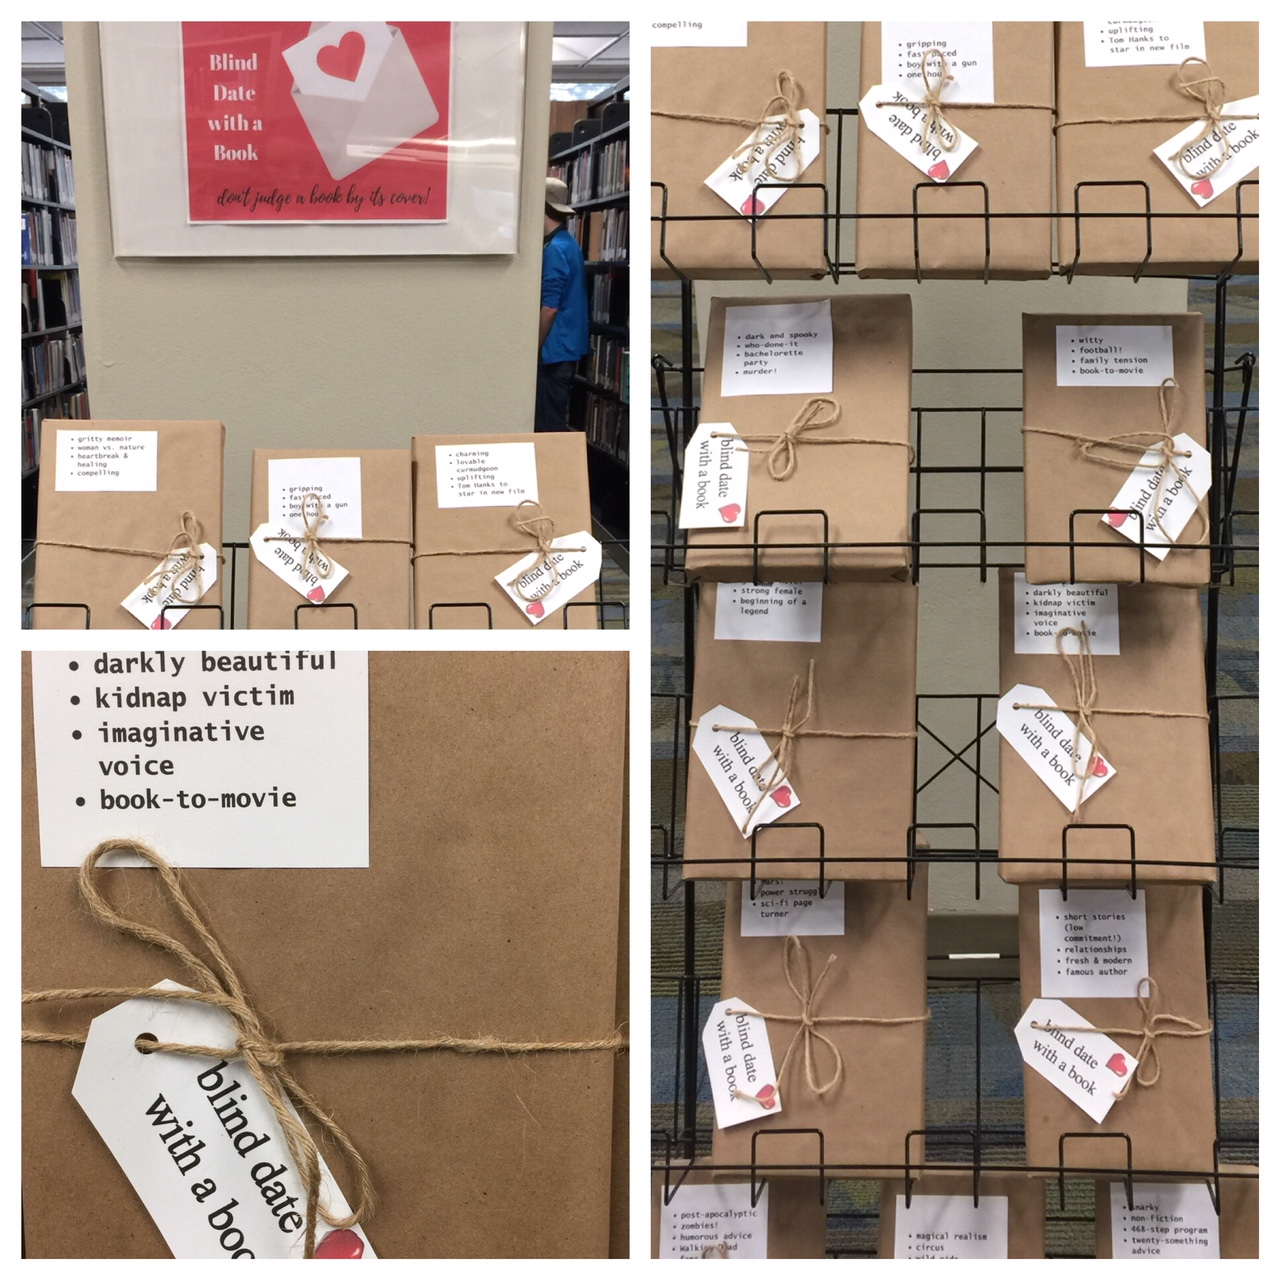 North - Blind Date with a Book!